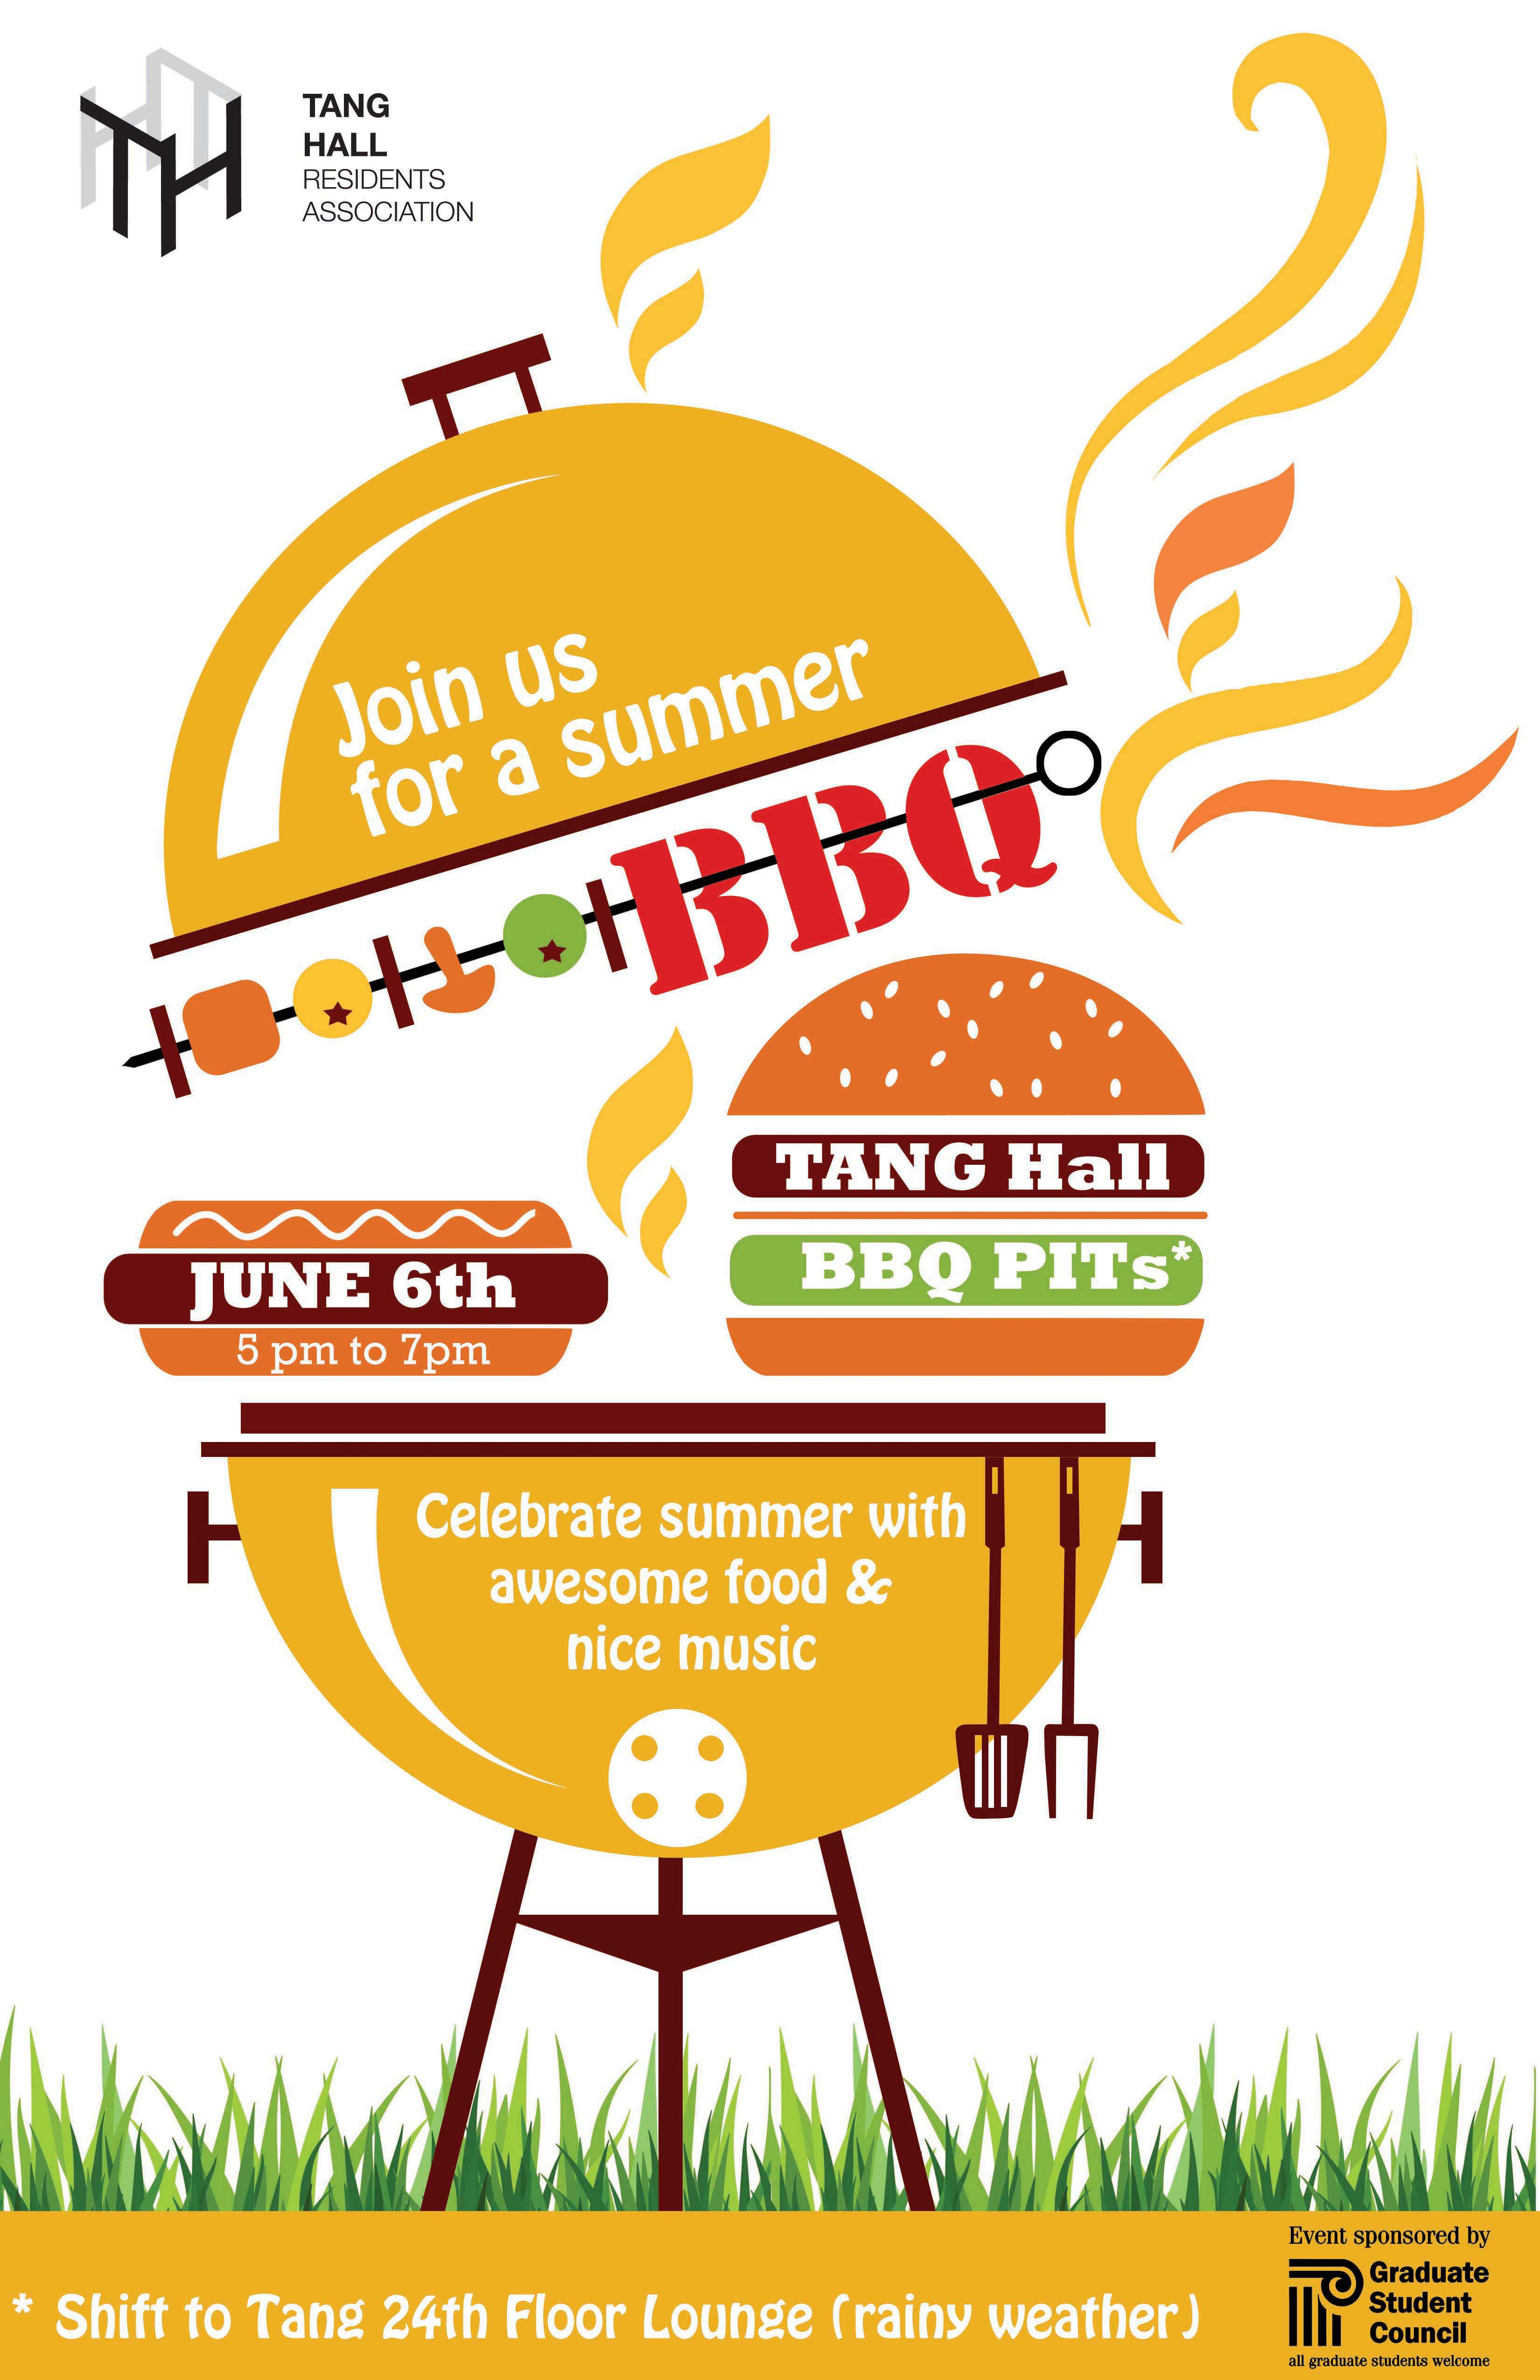 Free Summer BBQ Cliparts, Download Free Clip Art, Free Clip Art on.